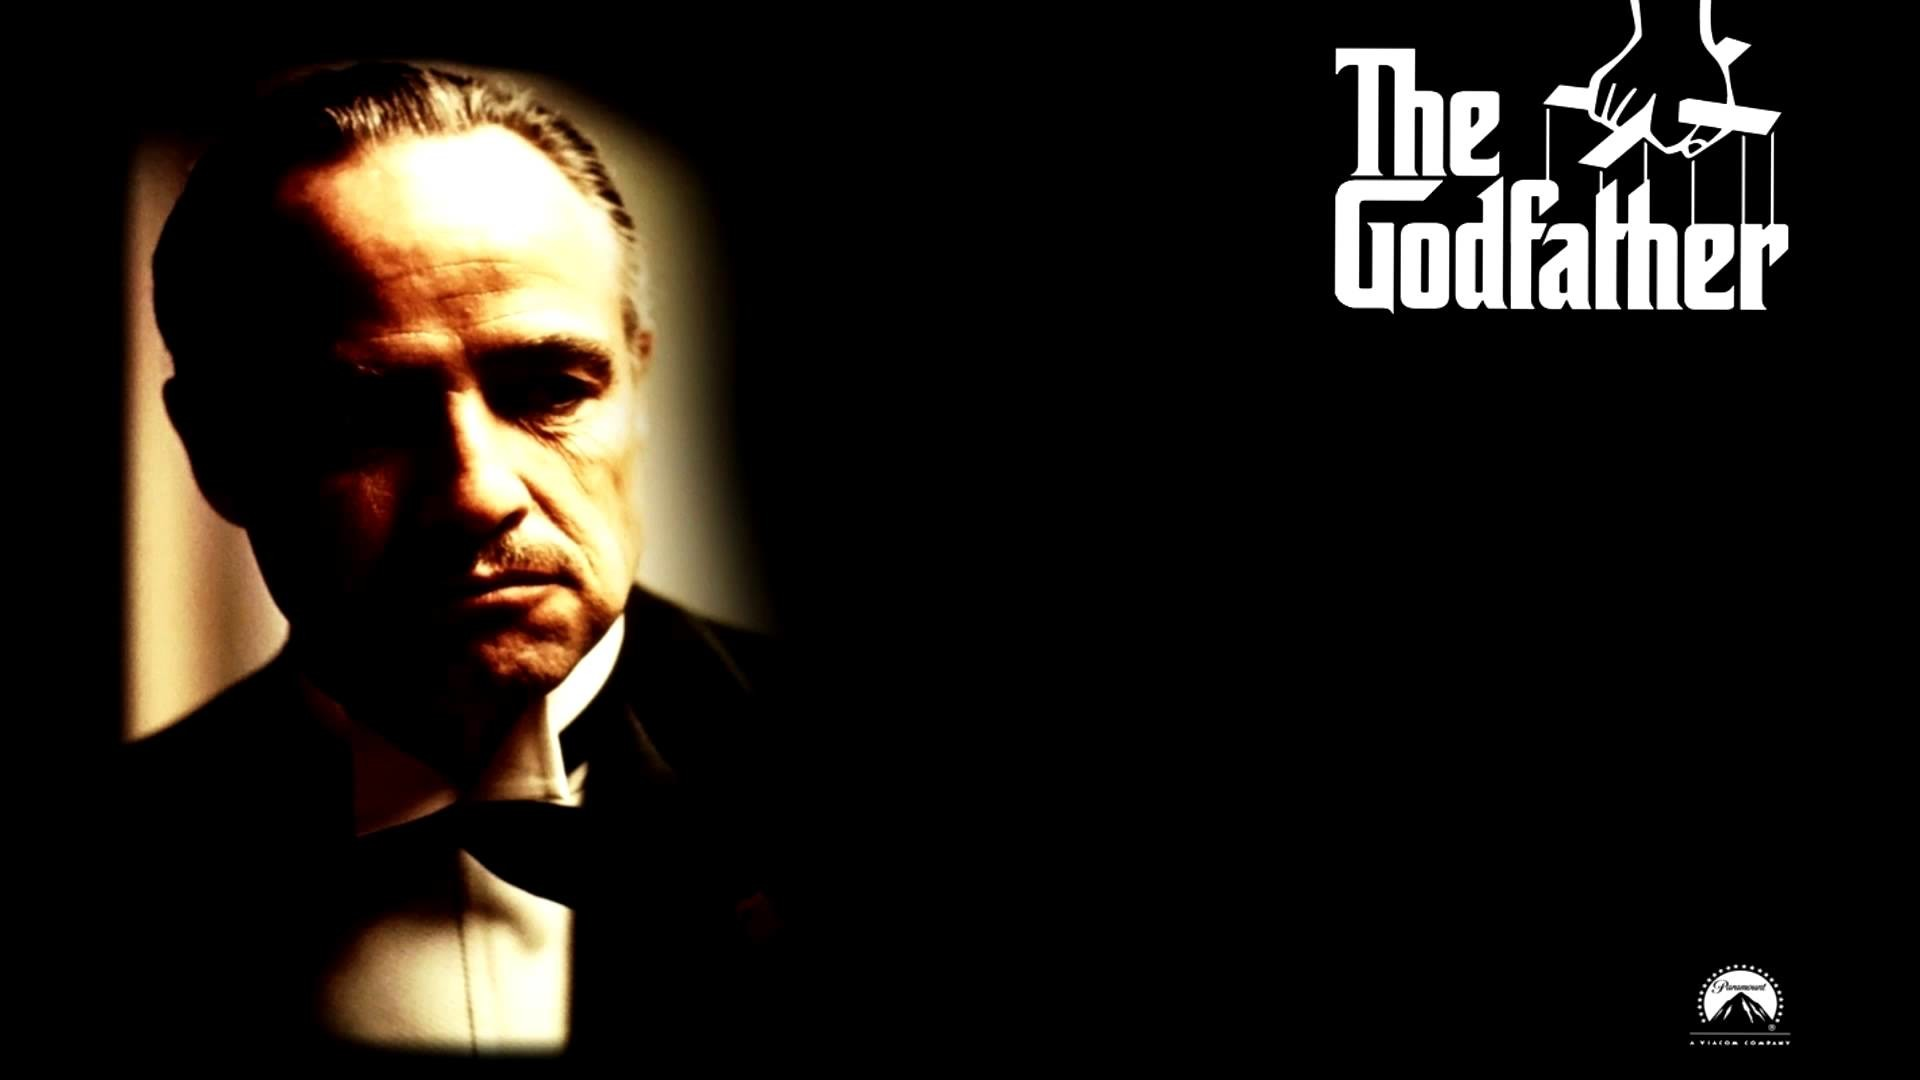 The Godfather Wallpapers (62+ images)